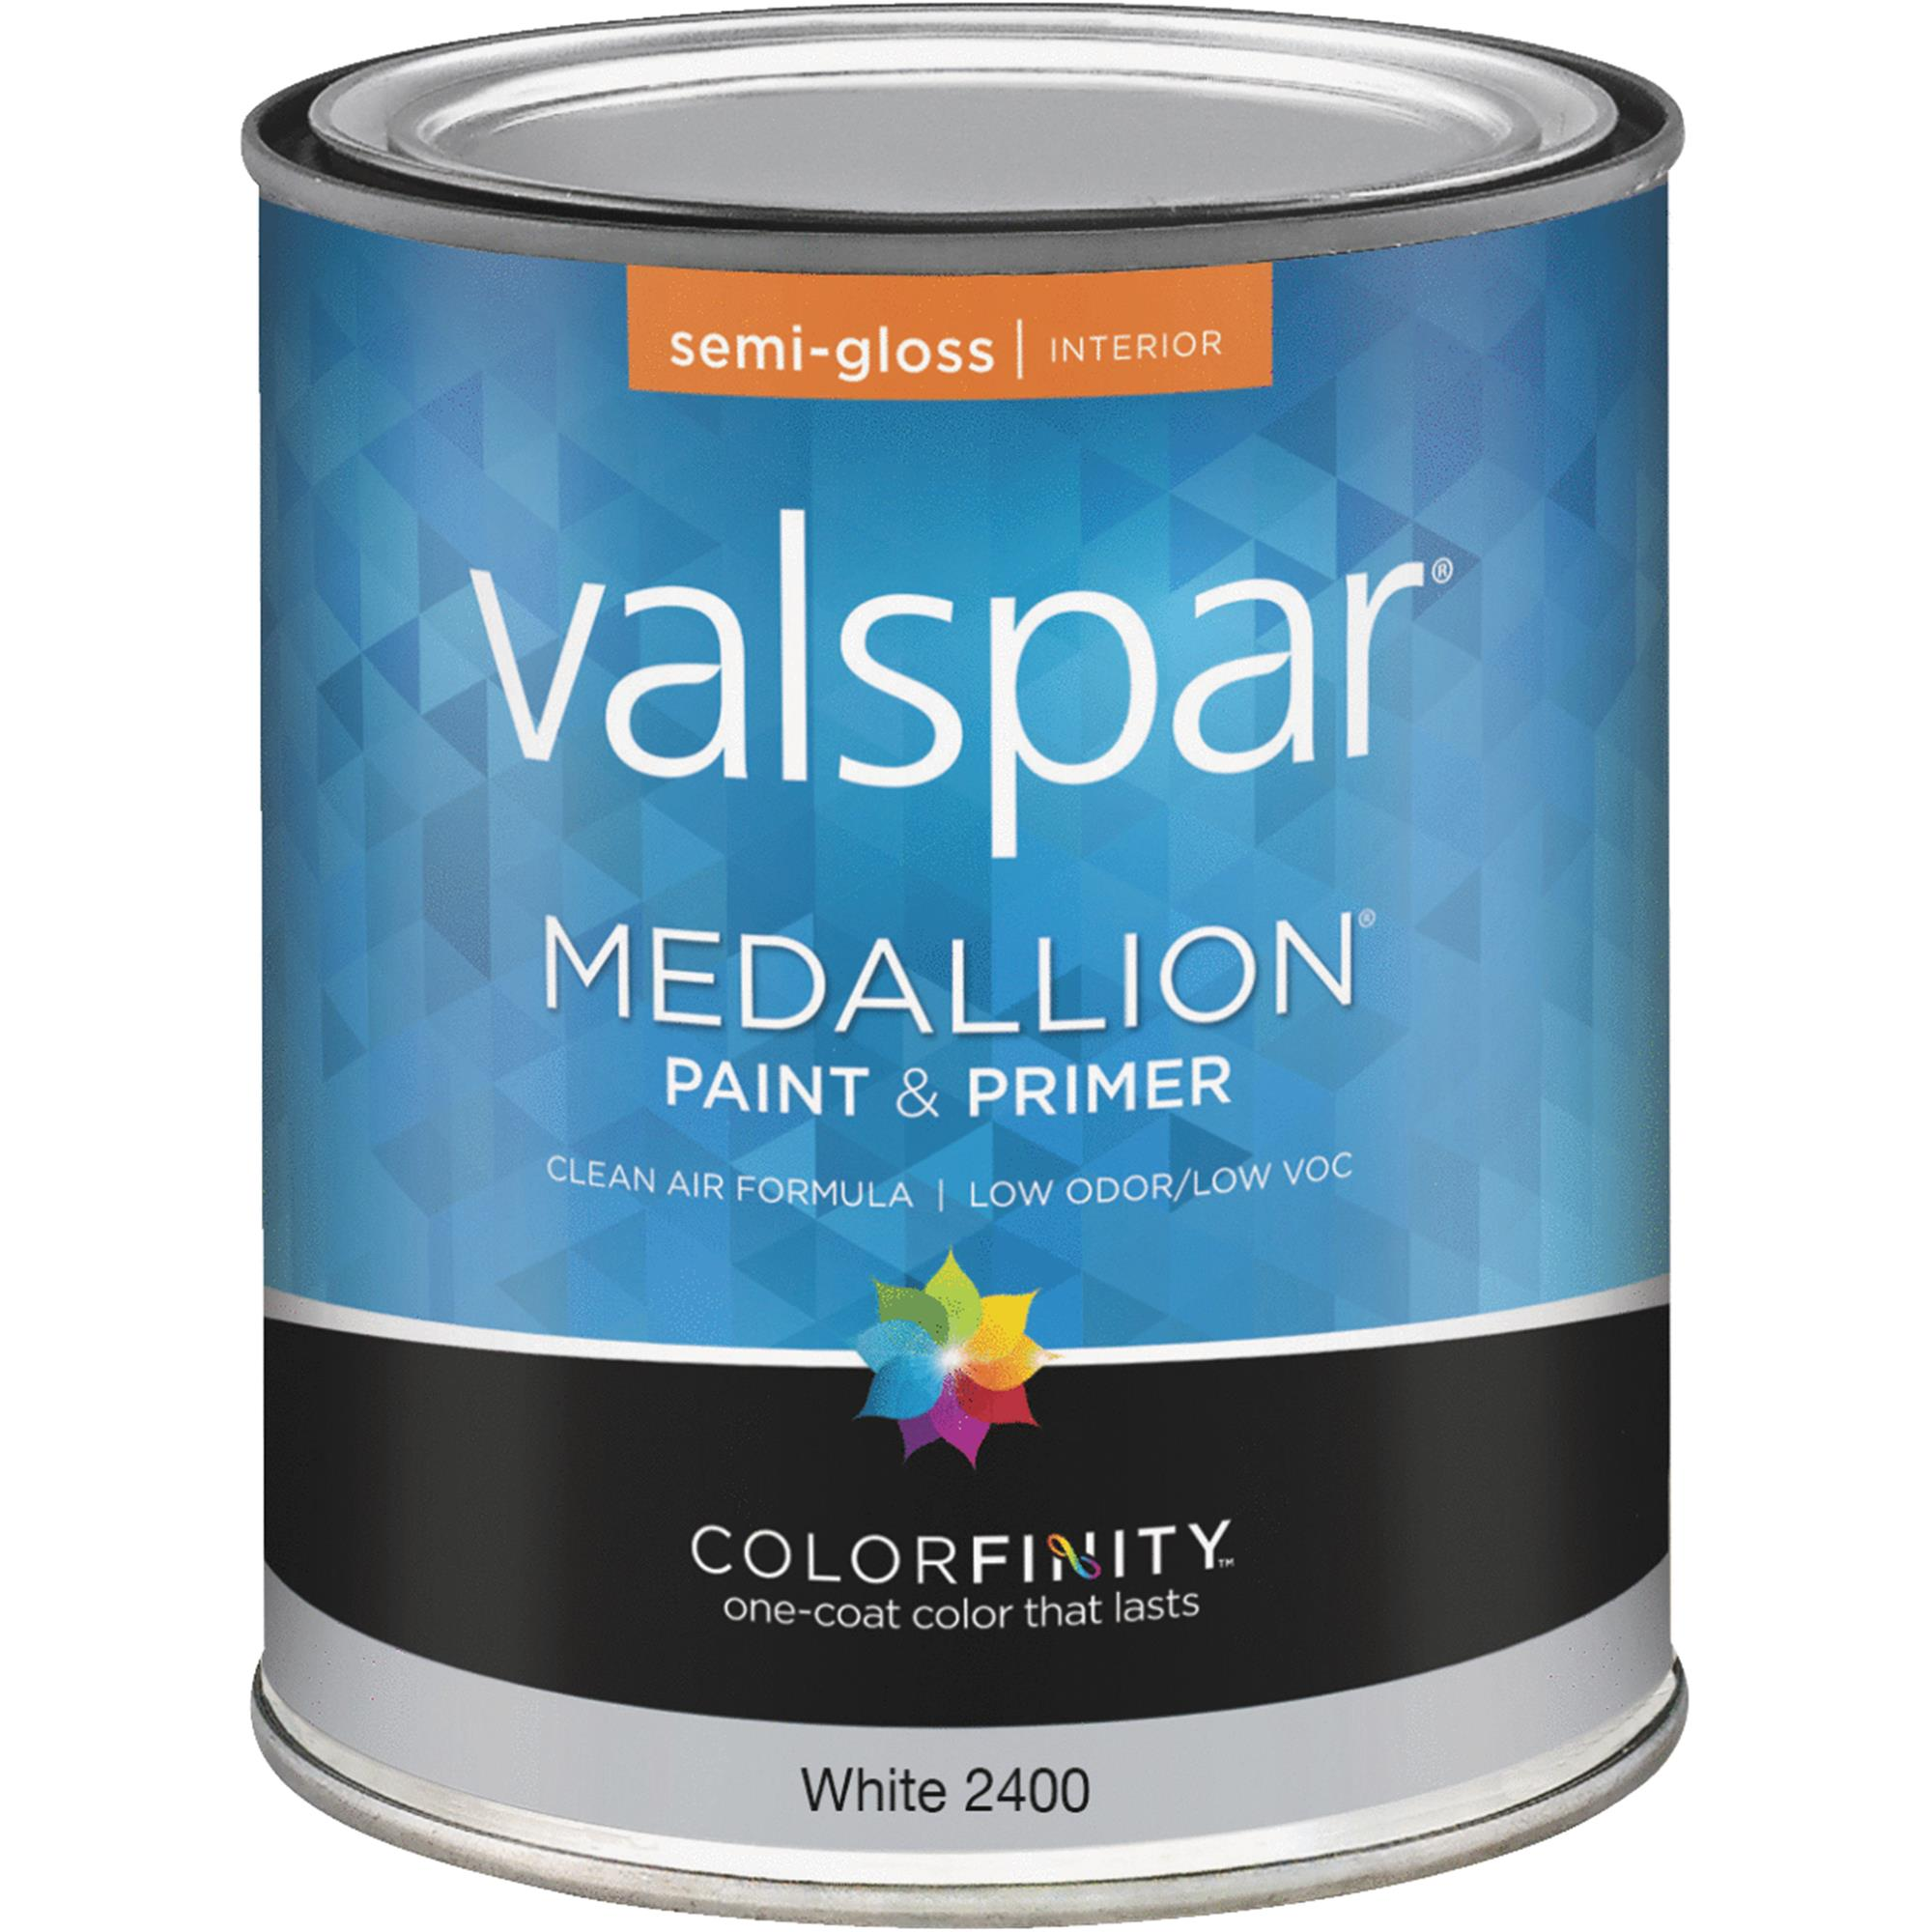 Valspar Medallion 100% Acrylic Paint & Primer Semi-Gloss Interior Wall Paint